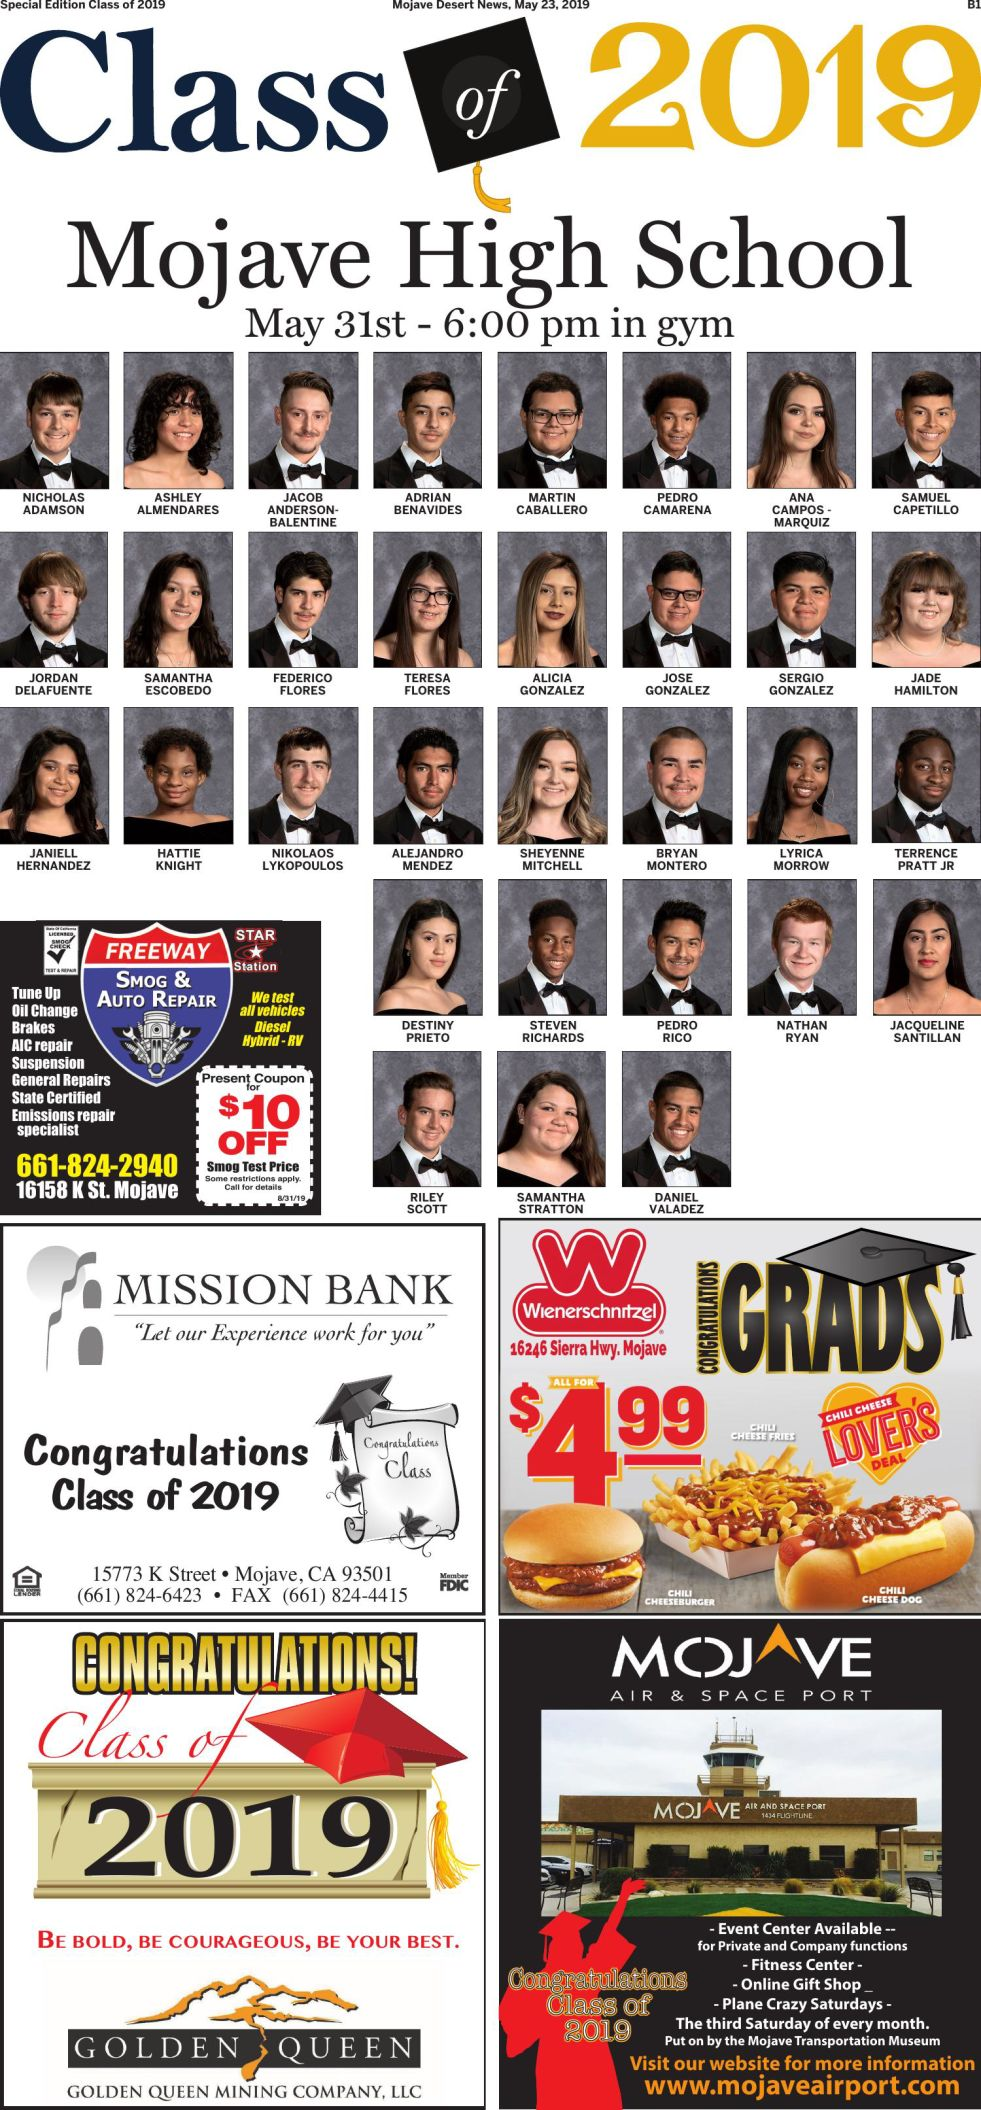 Class of 2019 Special Section